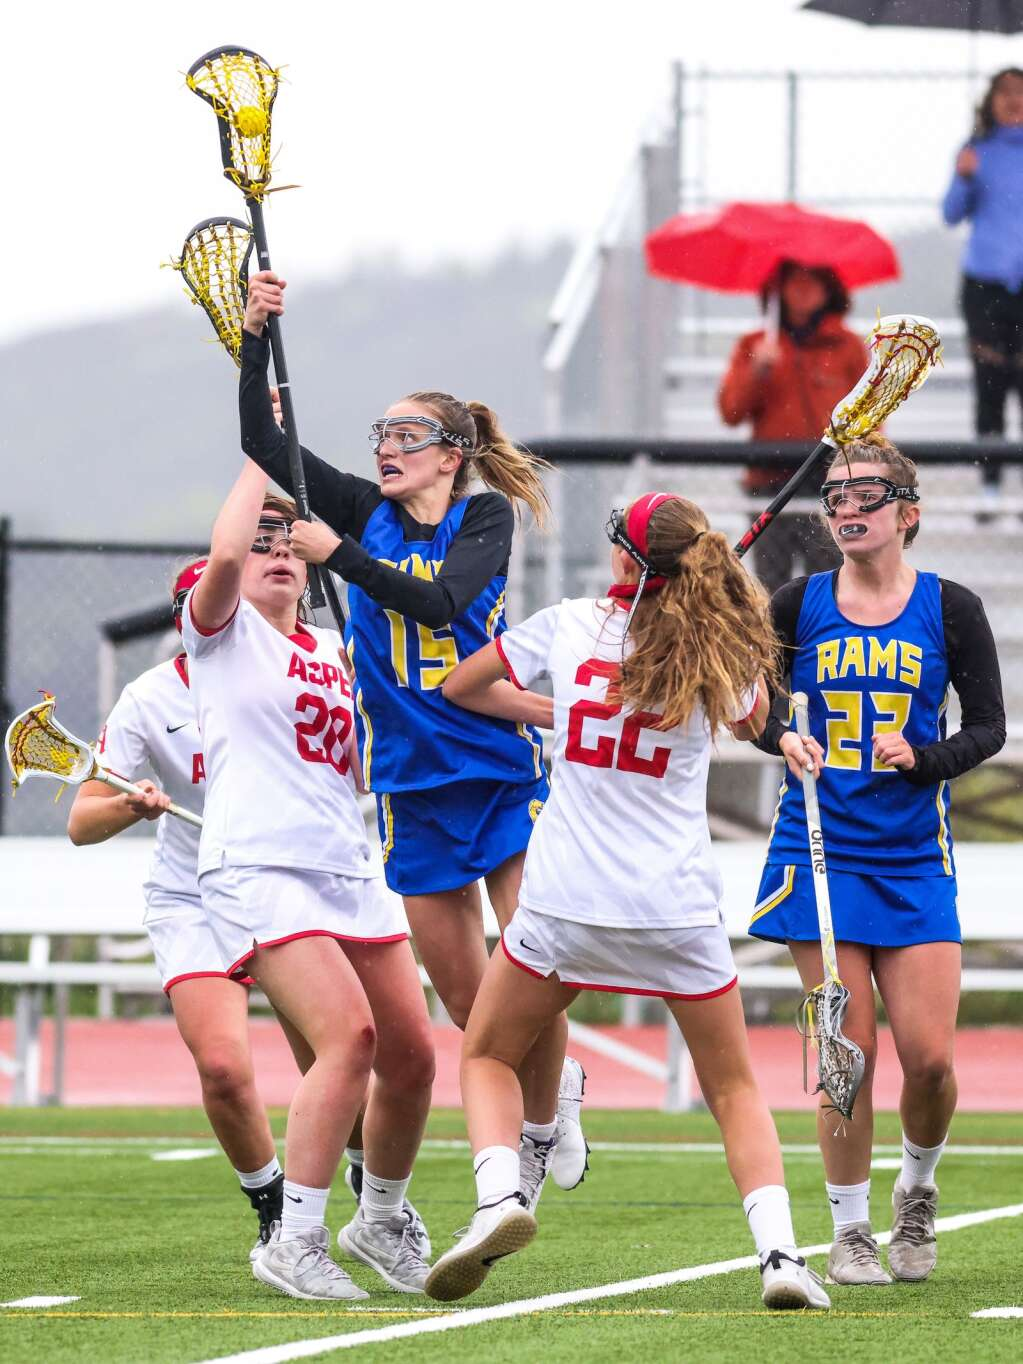 Roaring Fork lacrosse player Riley Dolan, wearing No. 15, rises up to possess the ball against Aspen on Monday, May 17, 2021, on the AHS turf. Photo by Austin Colbert/The Aspen Times.